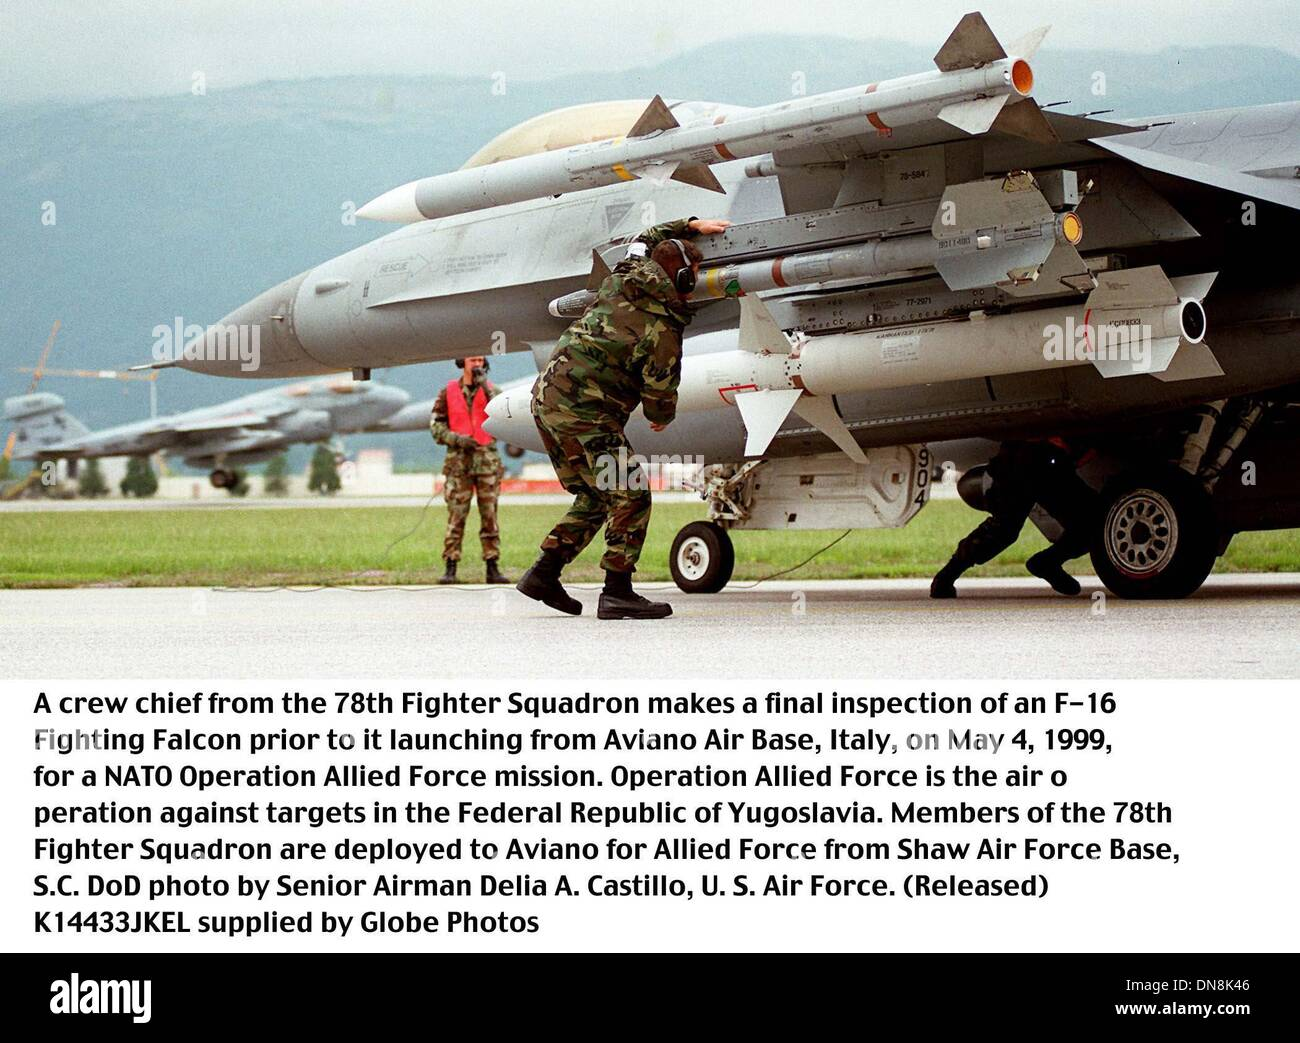 May 1, 1999 - Aviano Air Base, Italy - K14433JEKL      05/04/99.990504-F-4760-011..A crew chief from the 78th Fighter Squadron makes a final inspection of an F-16 Fighting Falcon prior to it launching from Aviano Air Base, Italy, on May 4, 1999, for a NATO Operation Allied Force mission.  Operation Allied Force is the air operation against targets in the Federal Republic of Yugosla - Stock Image